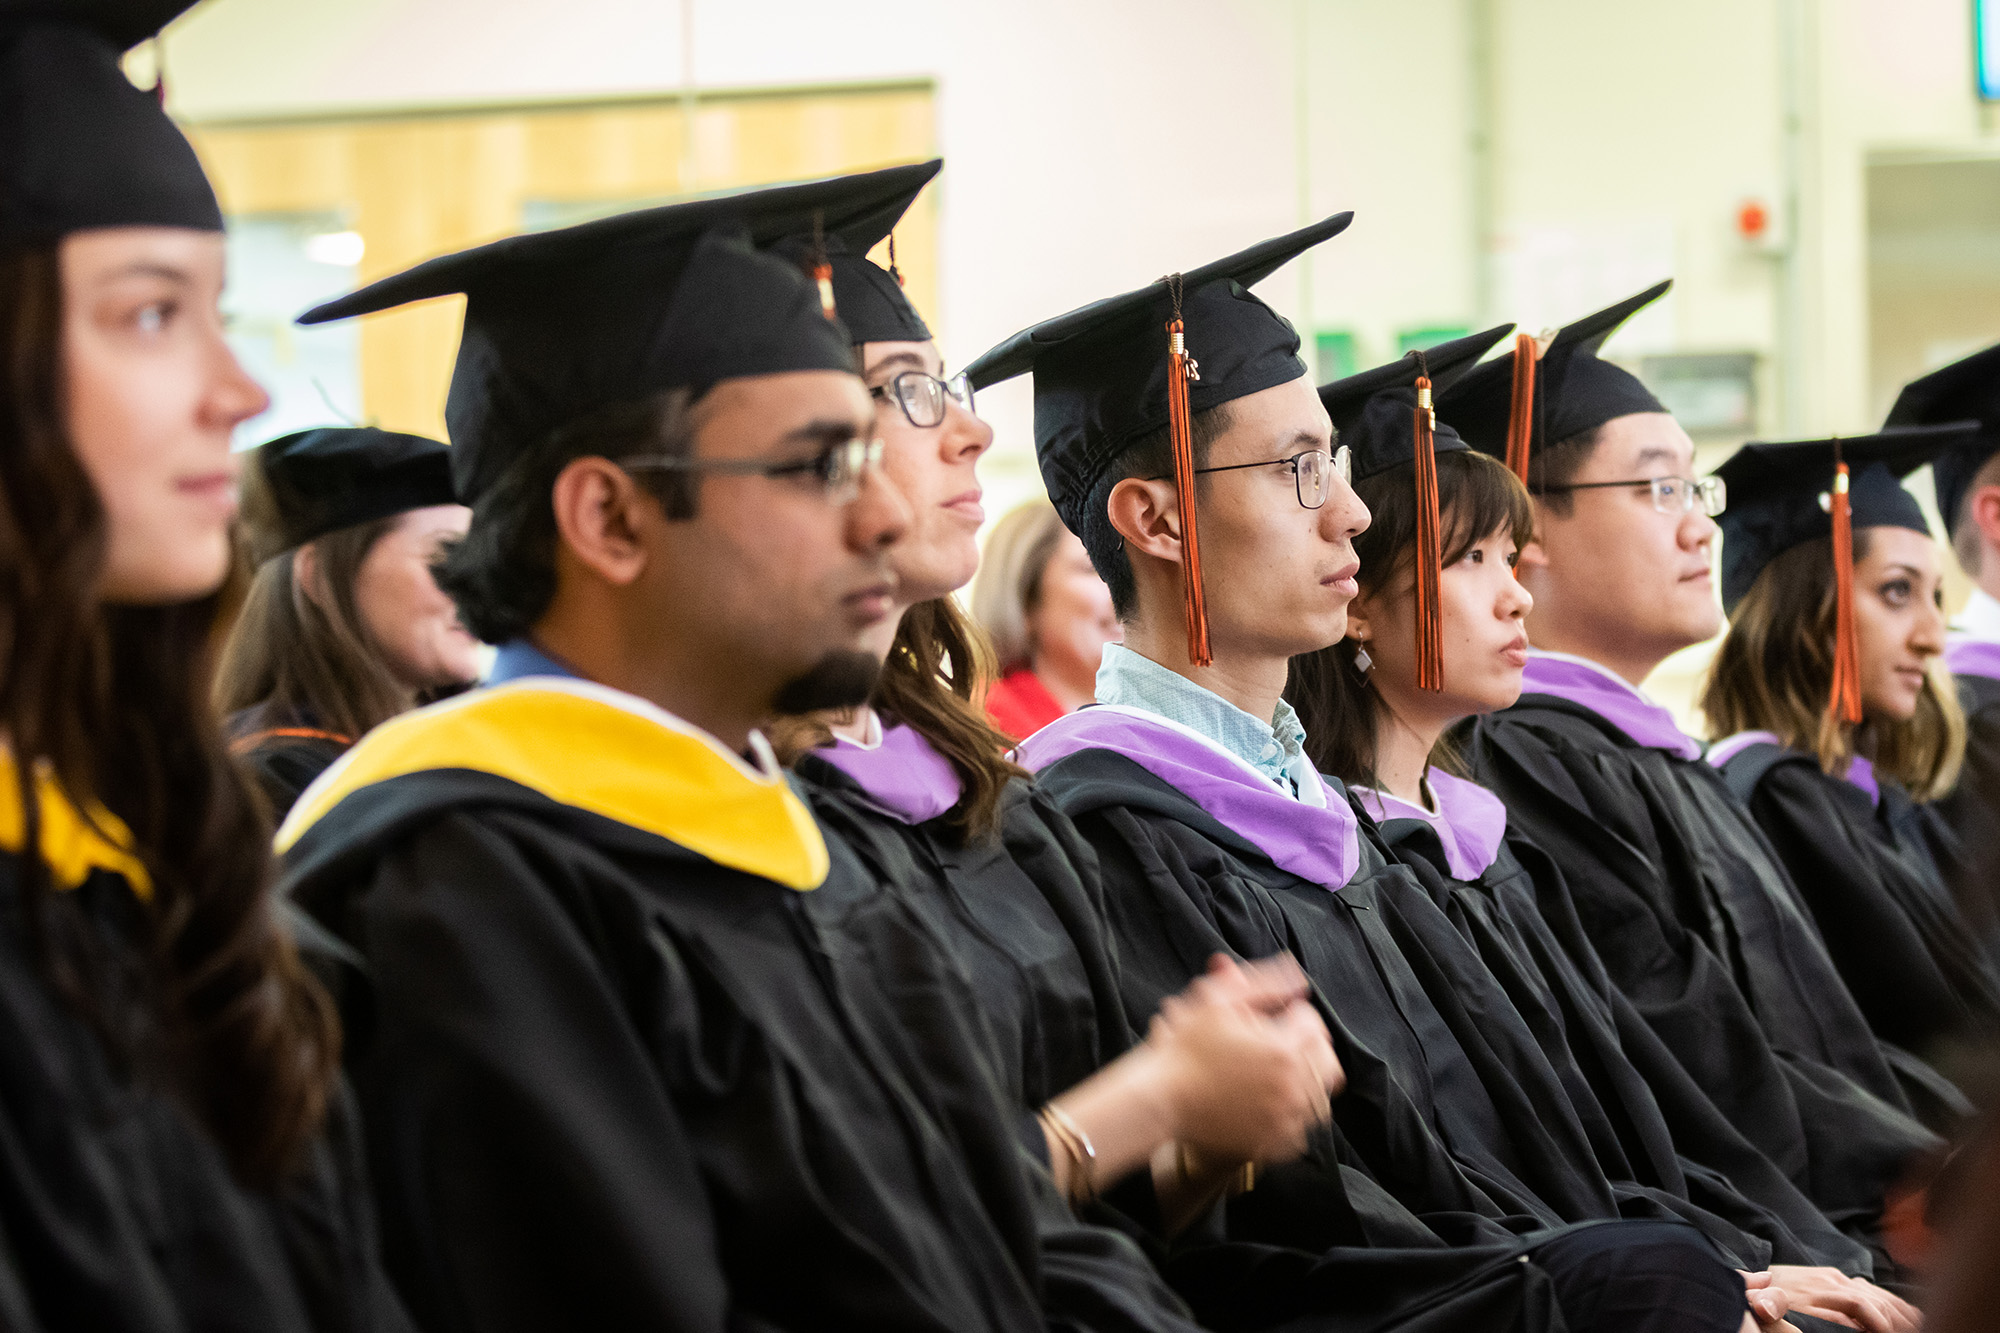 Students sitting, wearing graduation caps and gowns.